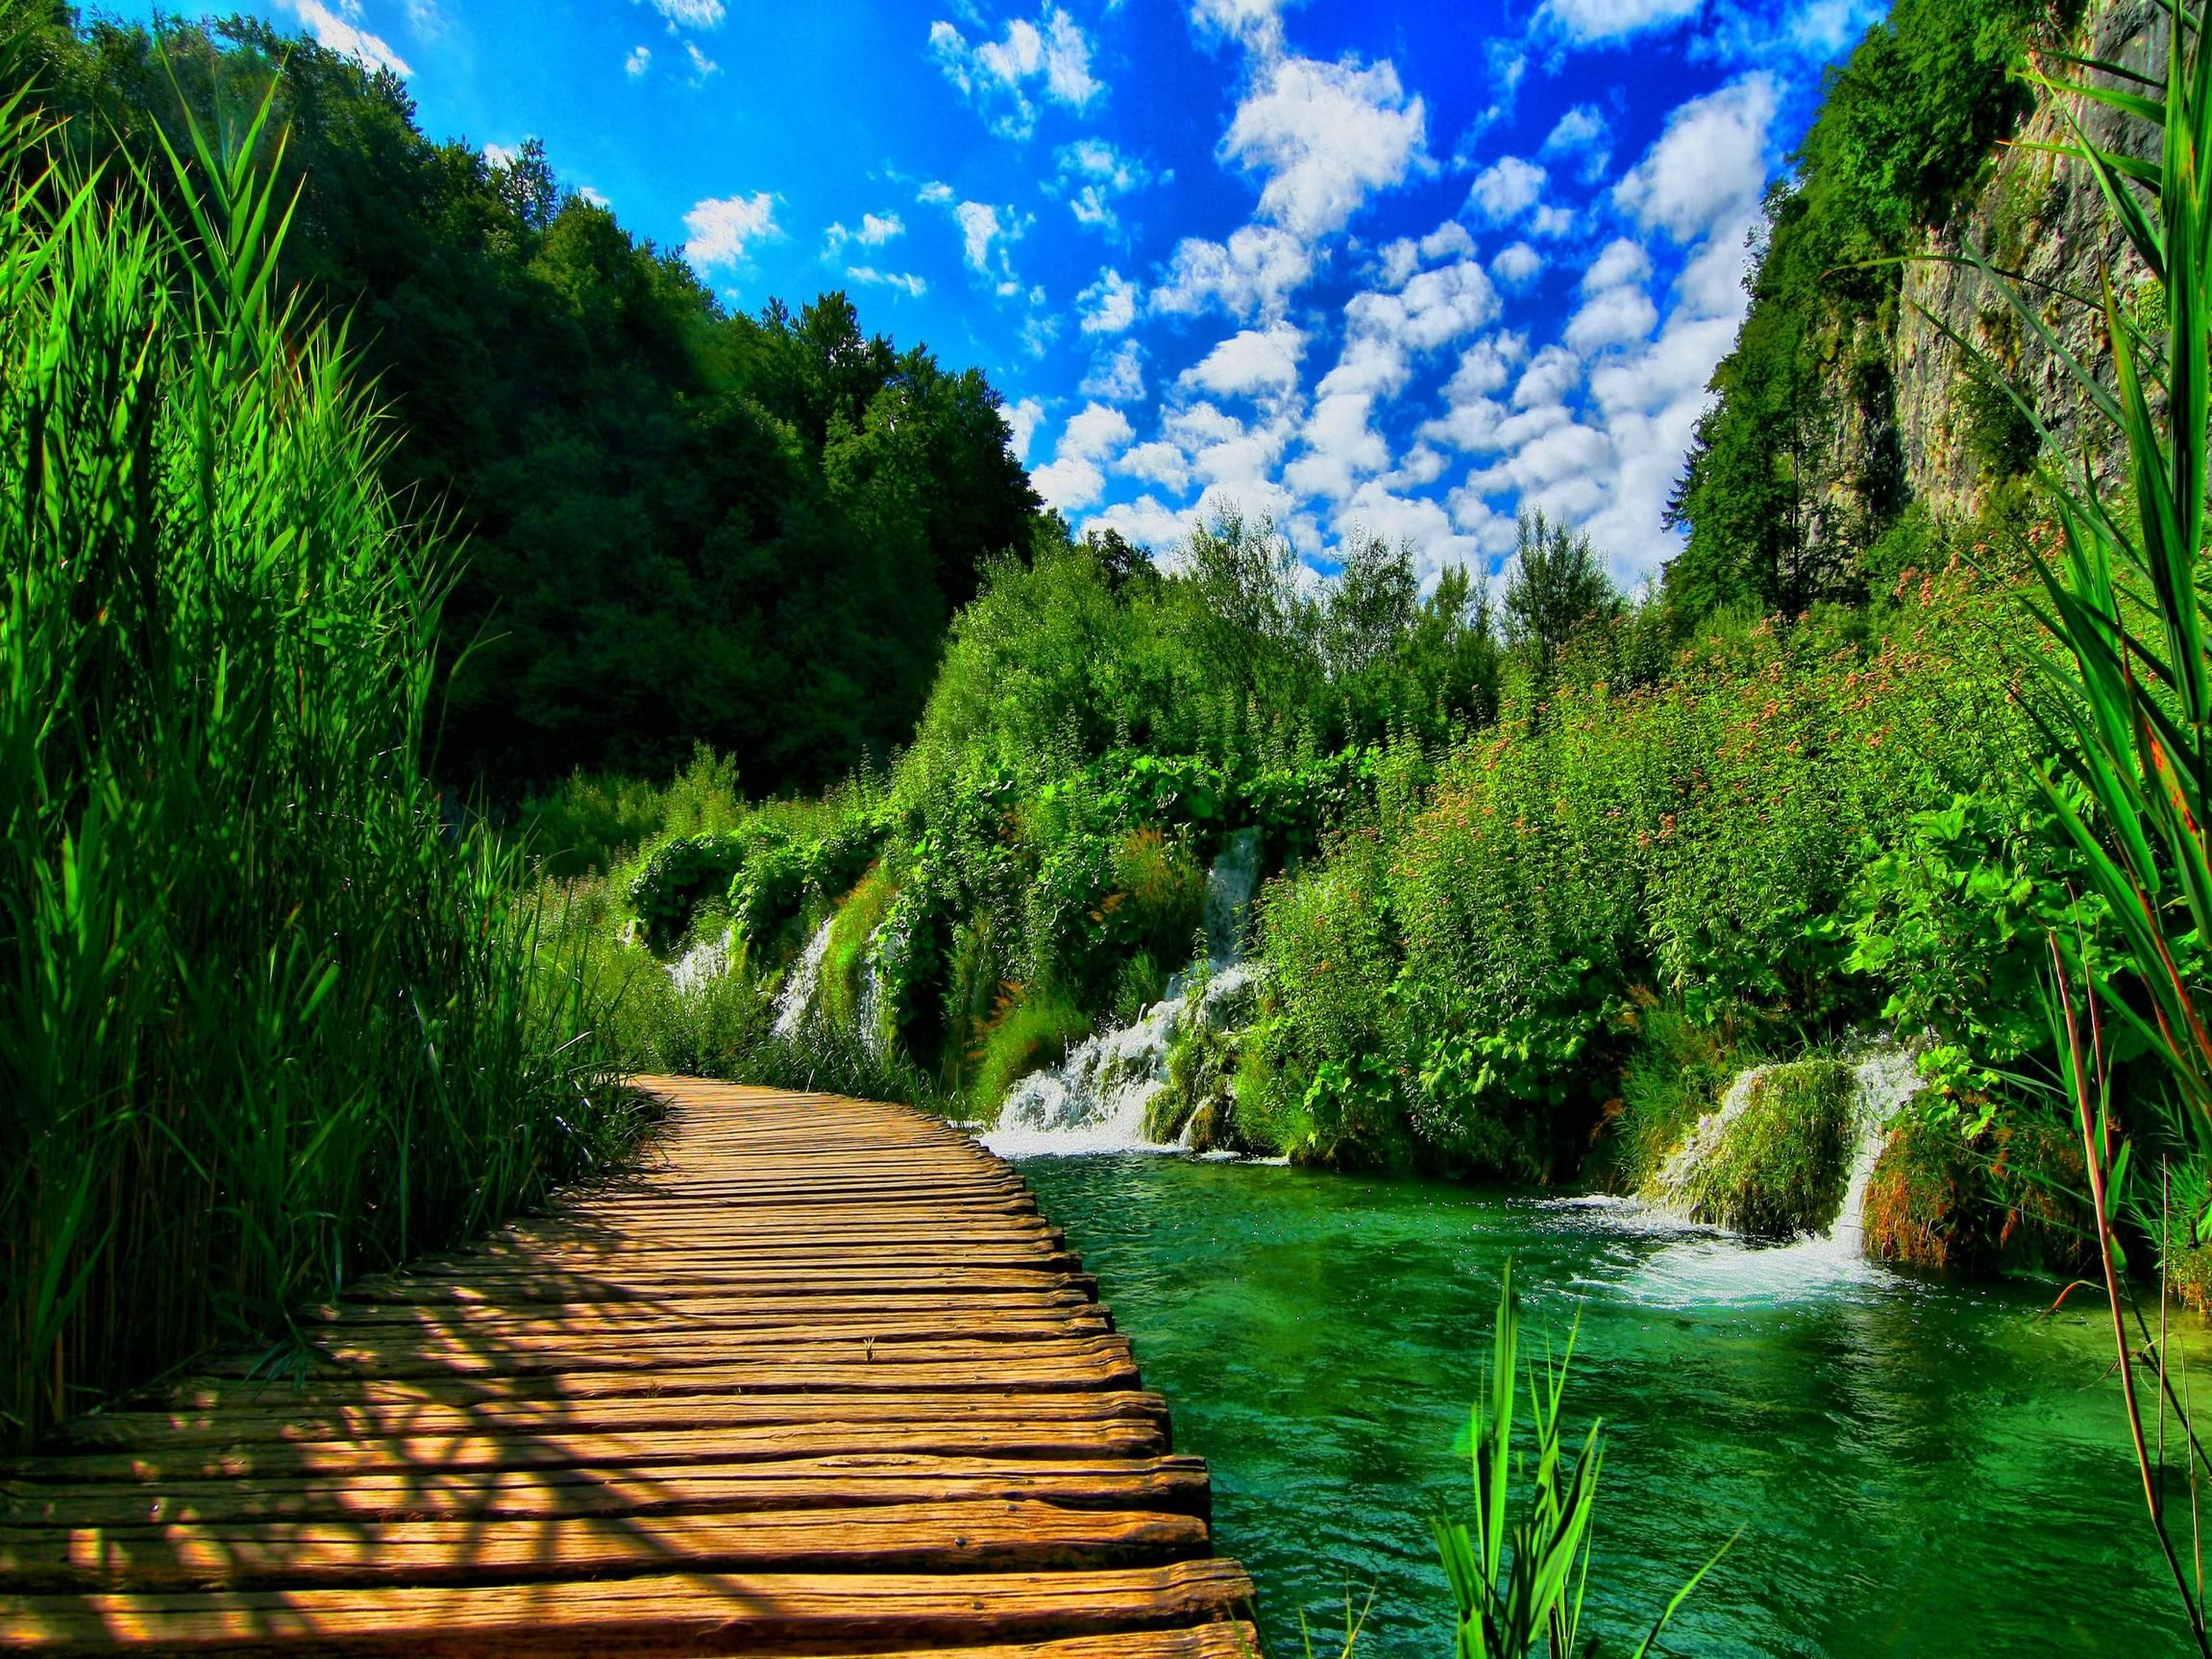 Download Nature Background Pc Hd Free Nature Background Pc Download Download Downl Beautiful Nature Desktop Background Nature Plitvice Lakes National Park